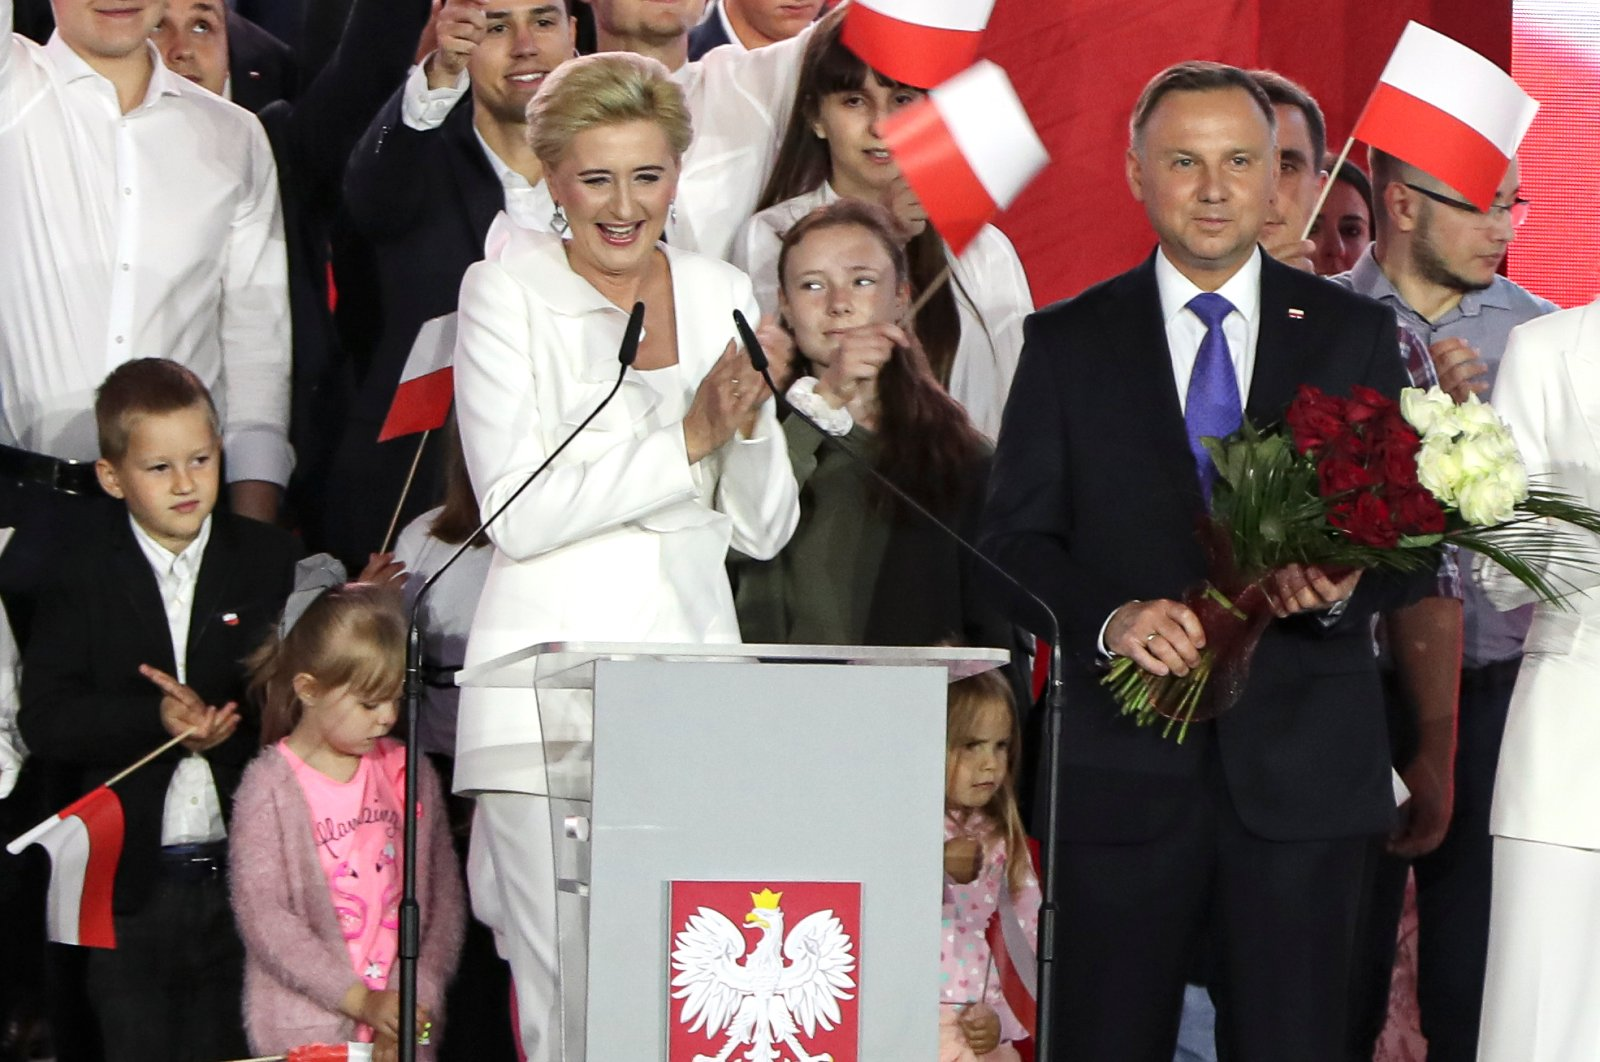 Incumbent President Andrzej Duda and his wife Agata Kornhauser-Duda smile after receiving flowers from supporters in Pultusk, Poland, July 12, 2020. (AP Photo)